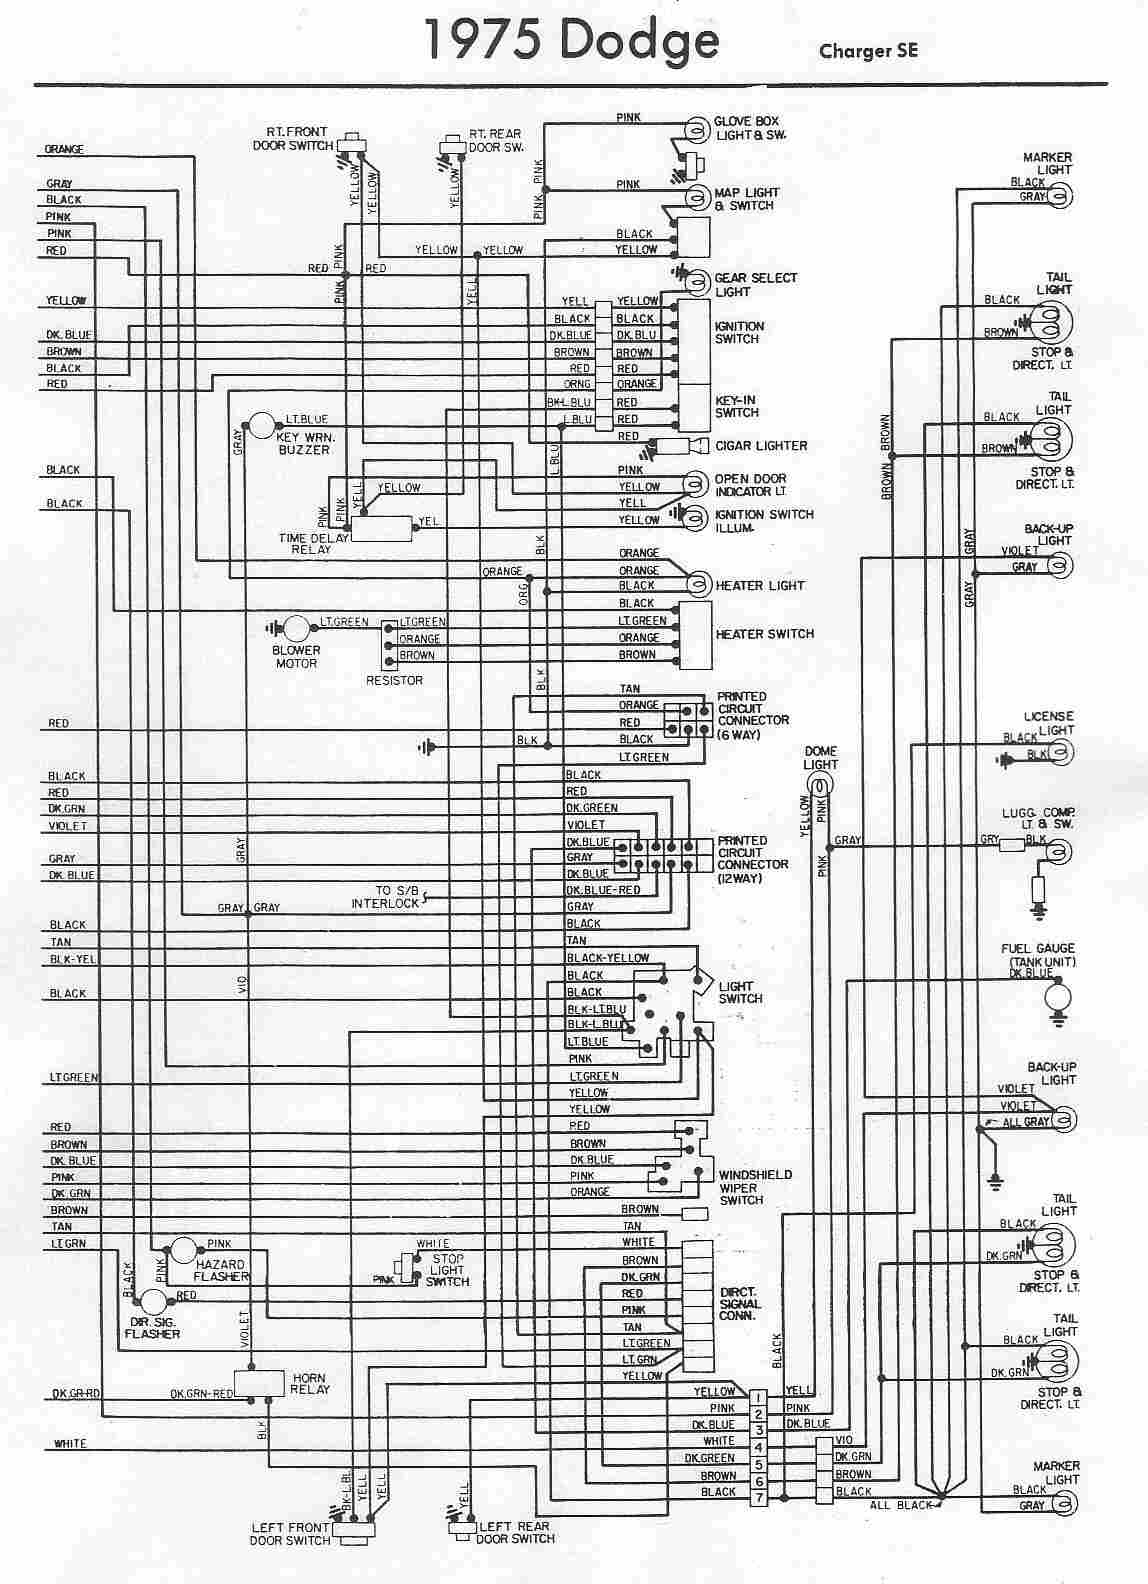 73 charger wiring diagram  | 1000 x 1373